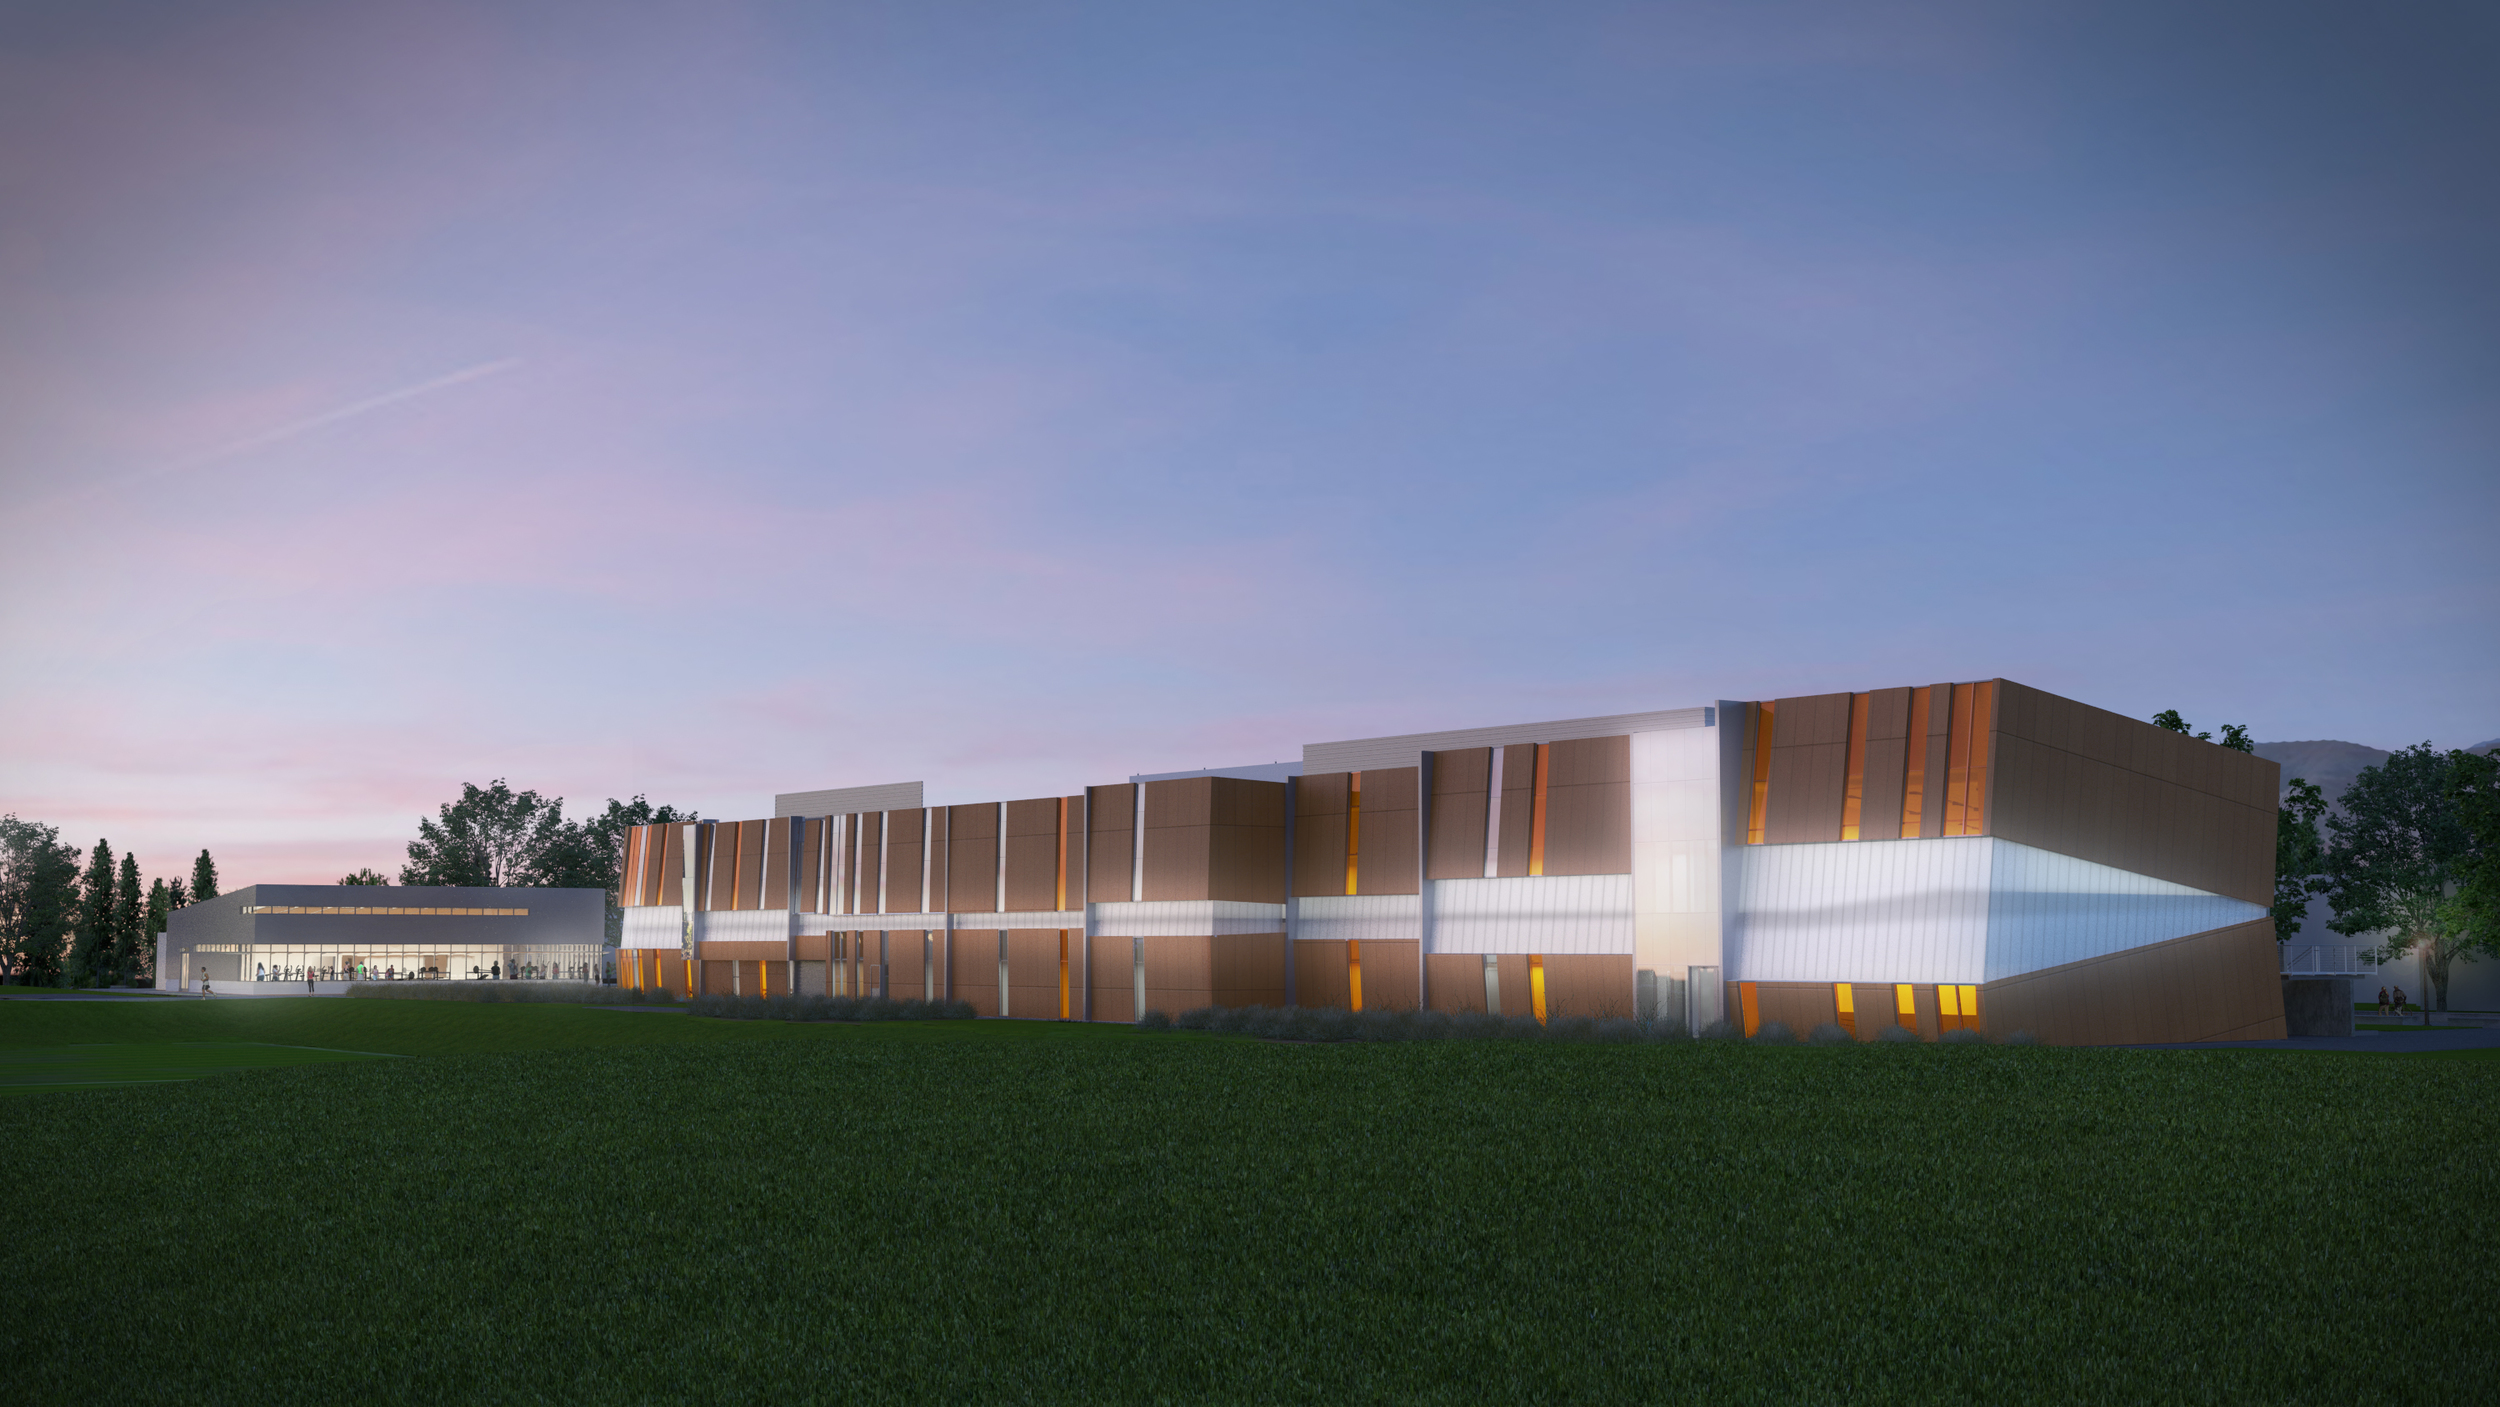 Evergreen Valley College Rendering 2